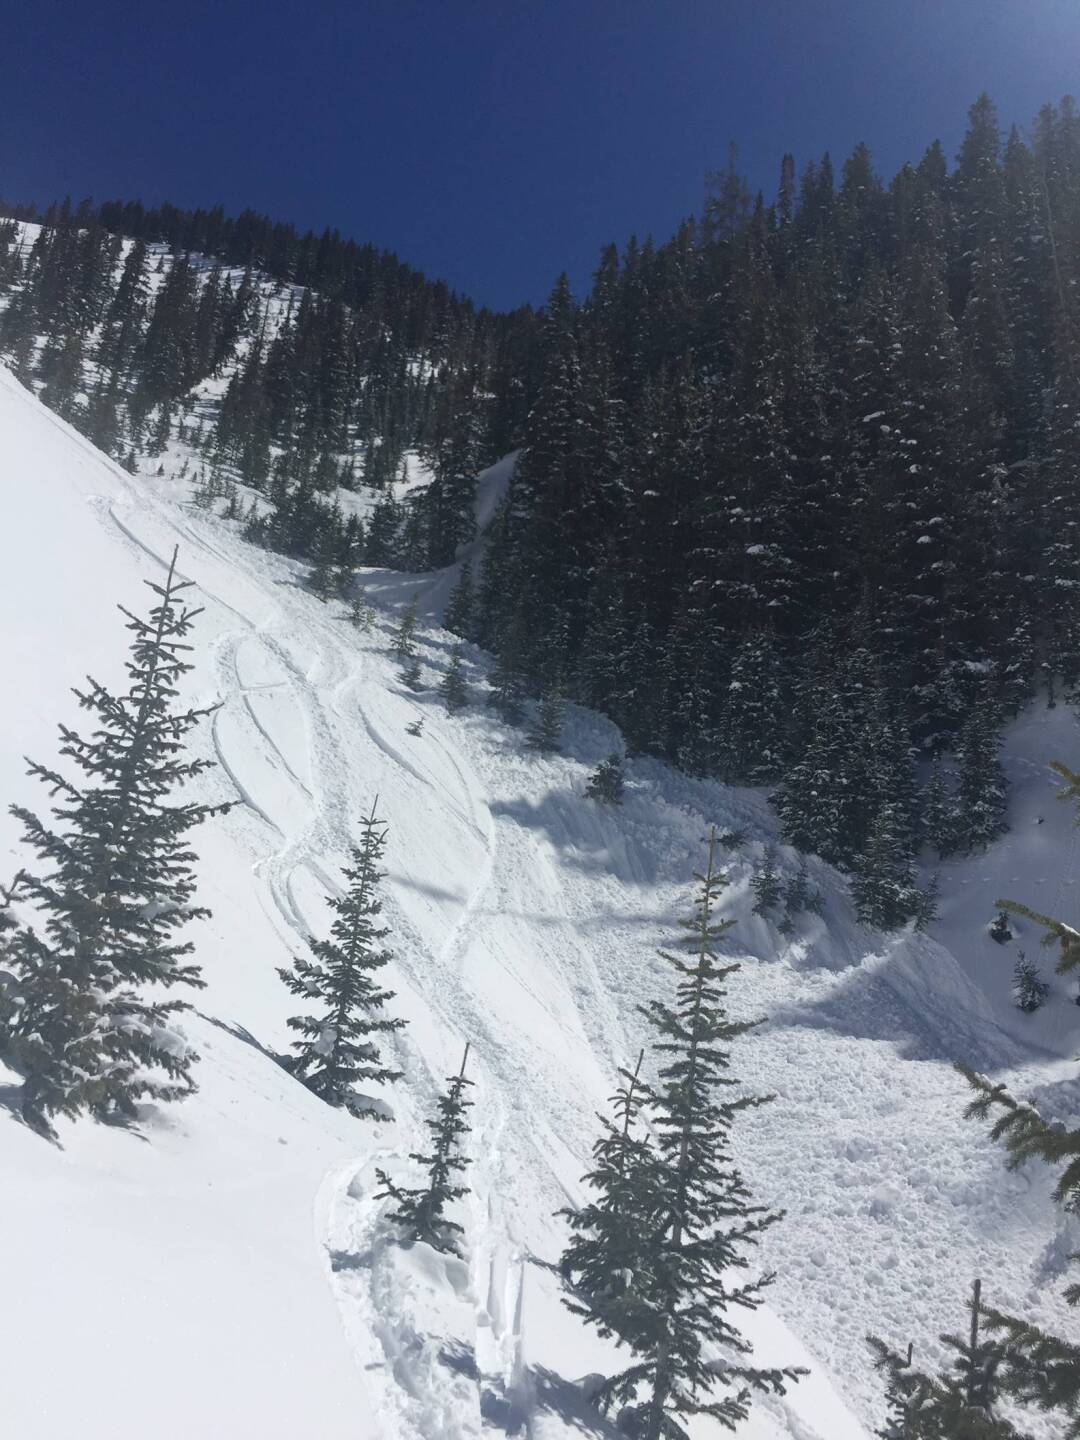 March 24 2020 avalanche in San Miguel County, snowboarder injured